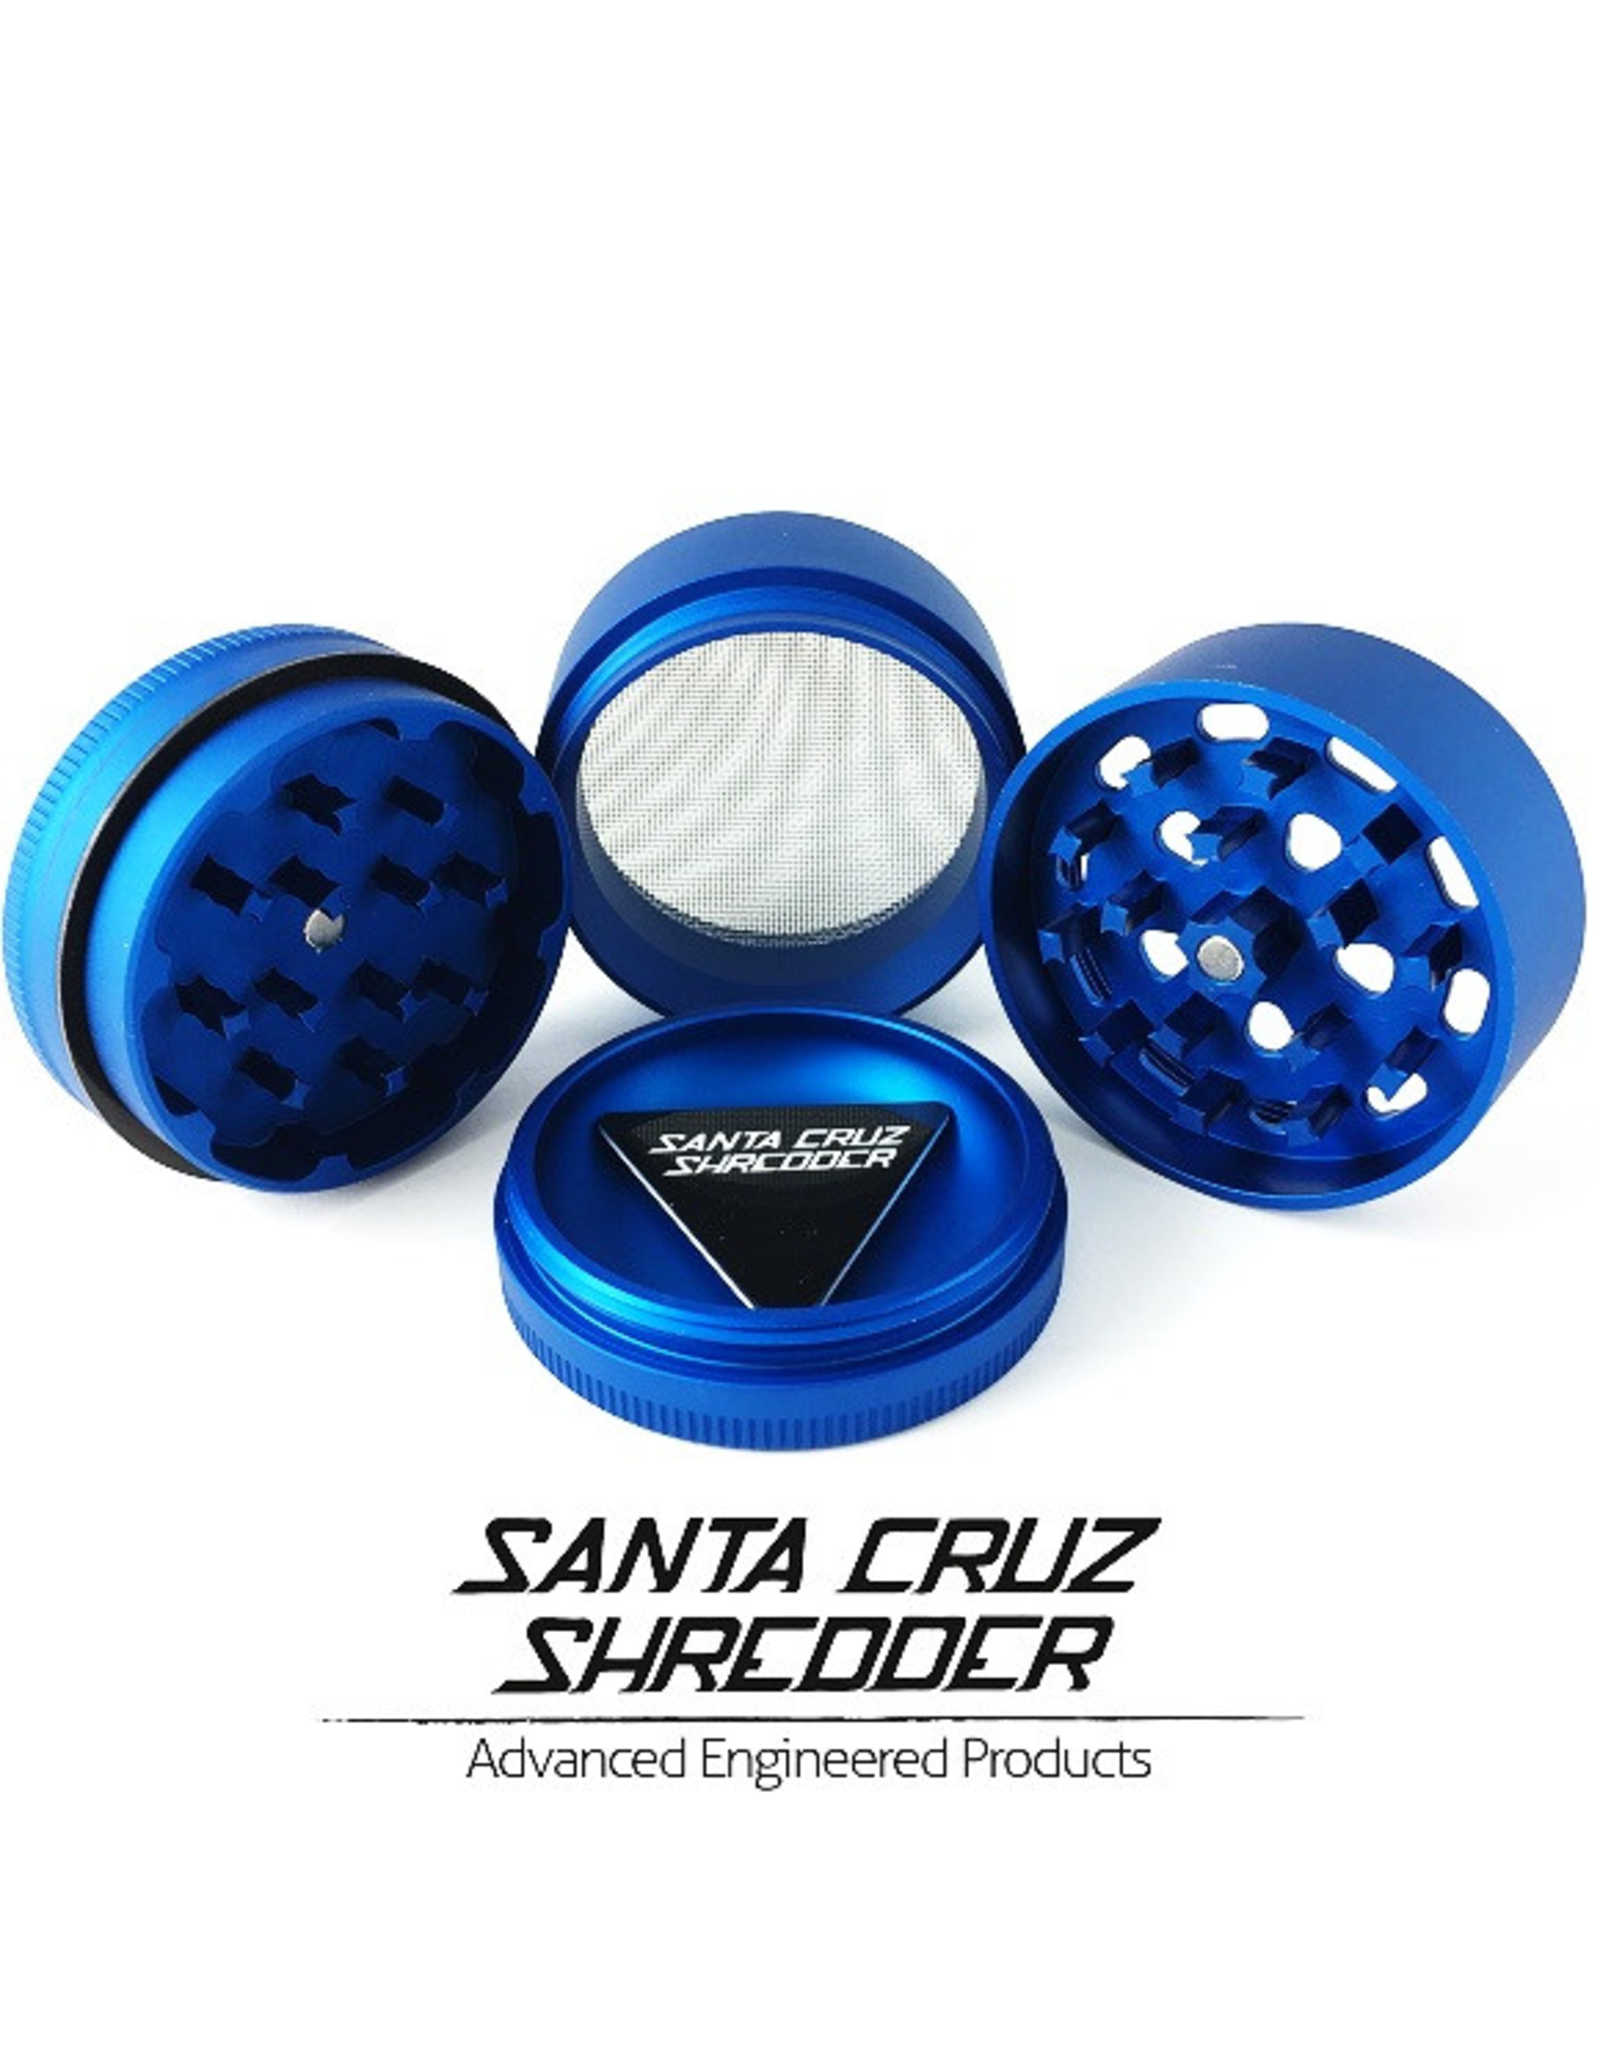 Santa Cruz Shredder Santa Cruz Shredder Small 4Pc Matte Blue